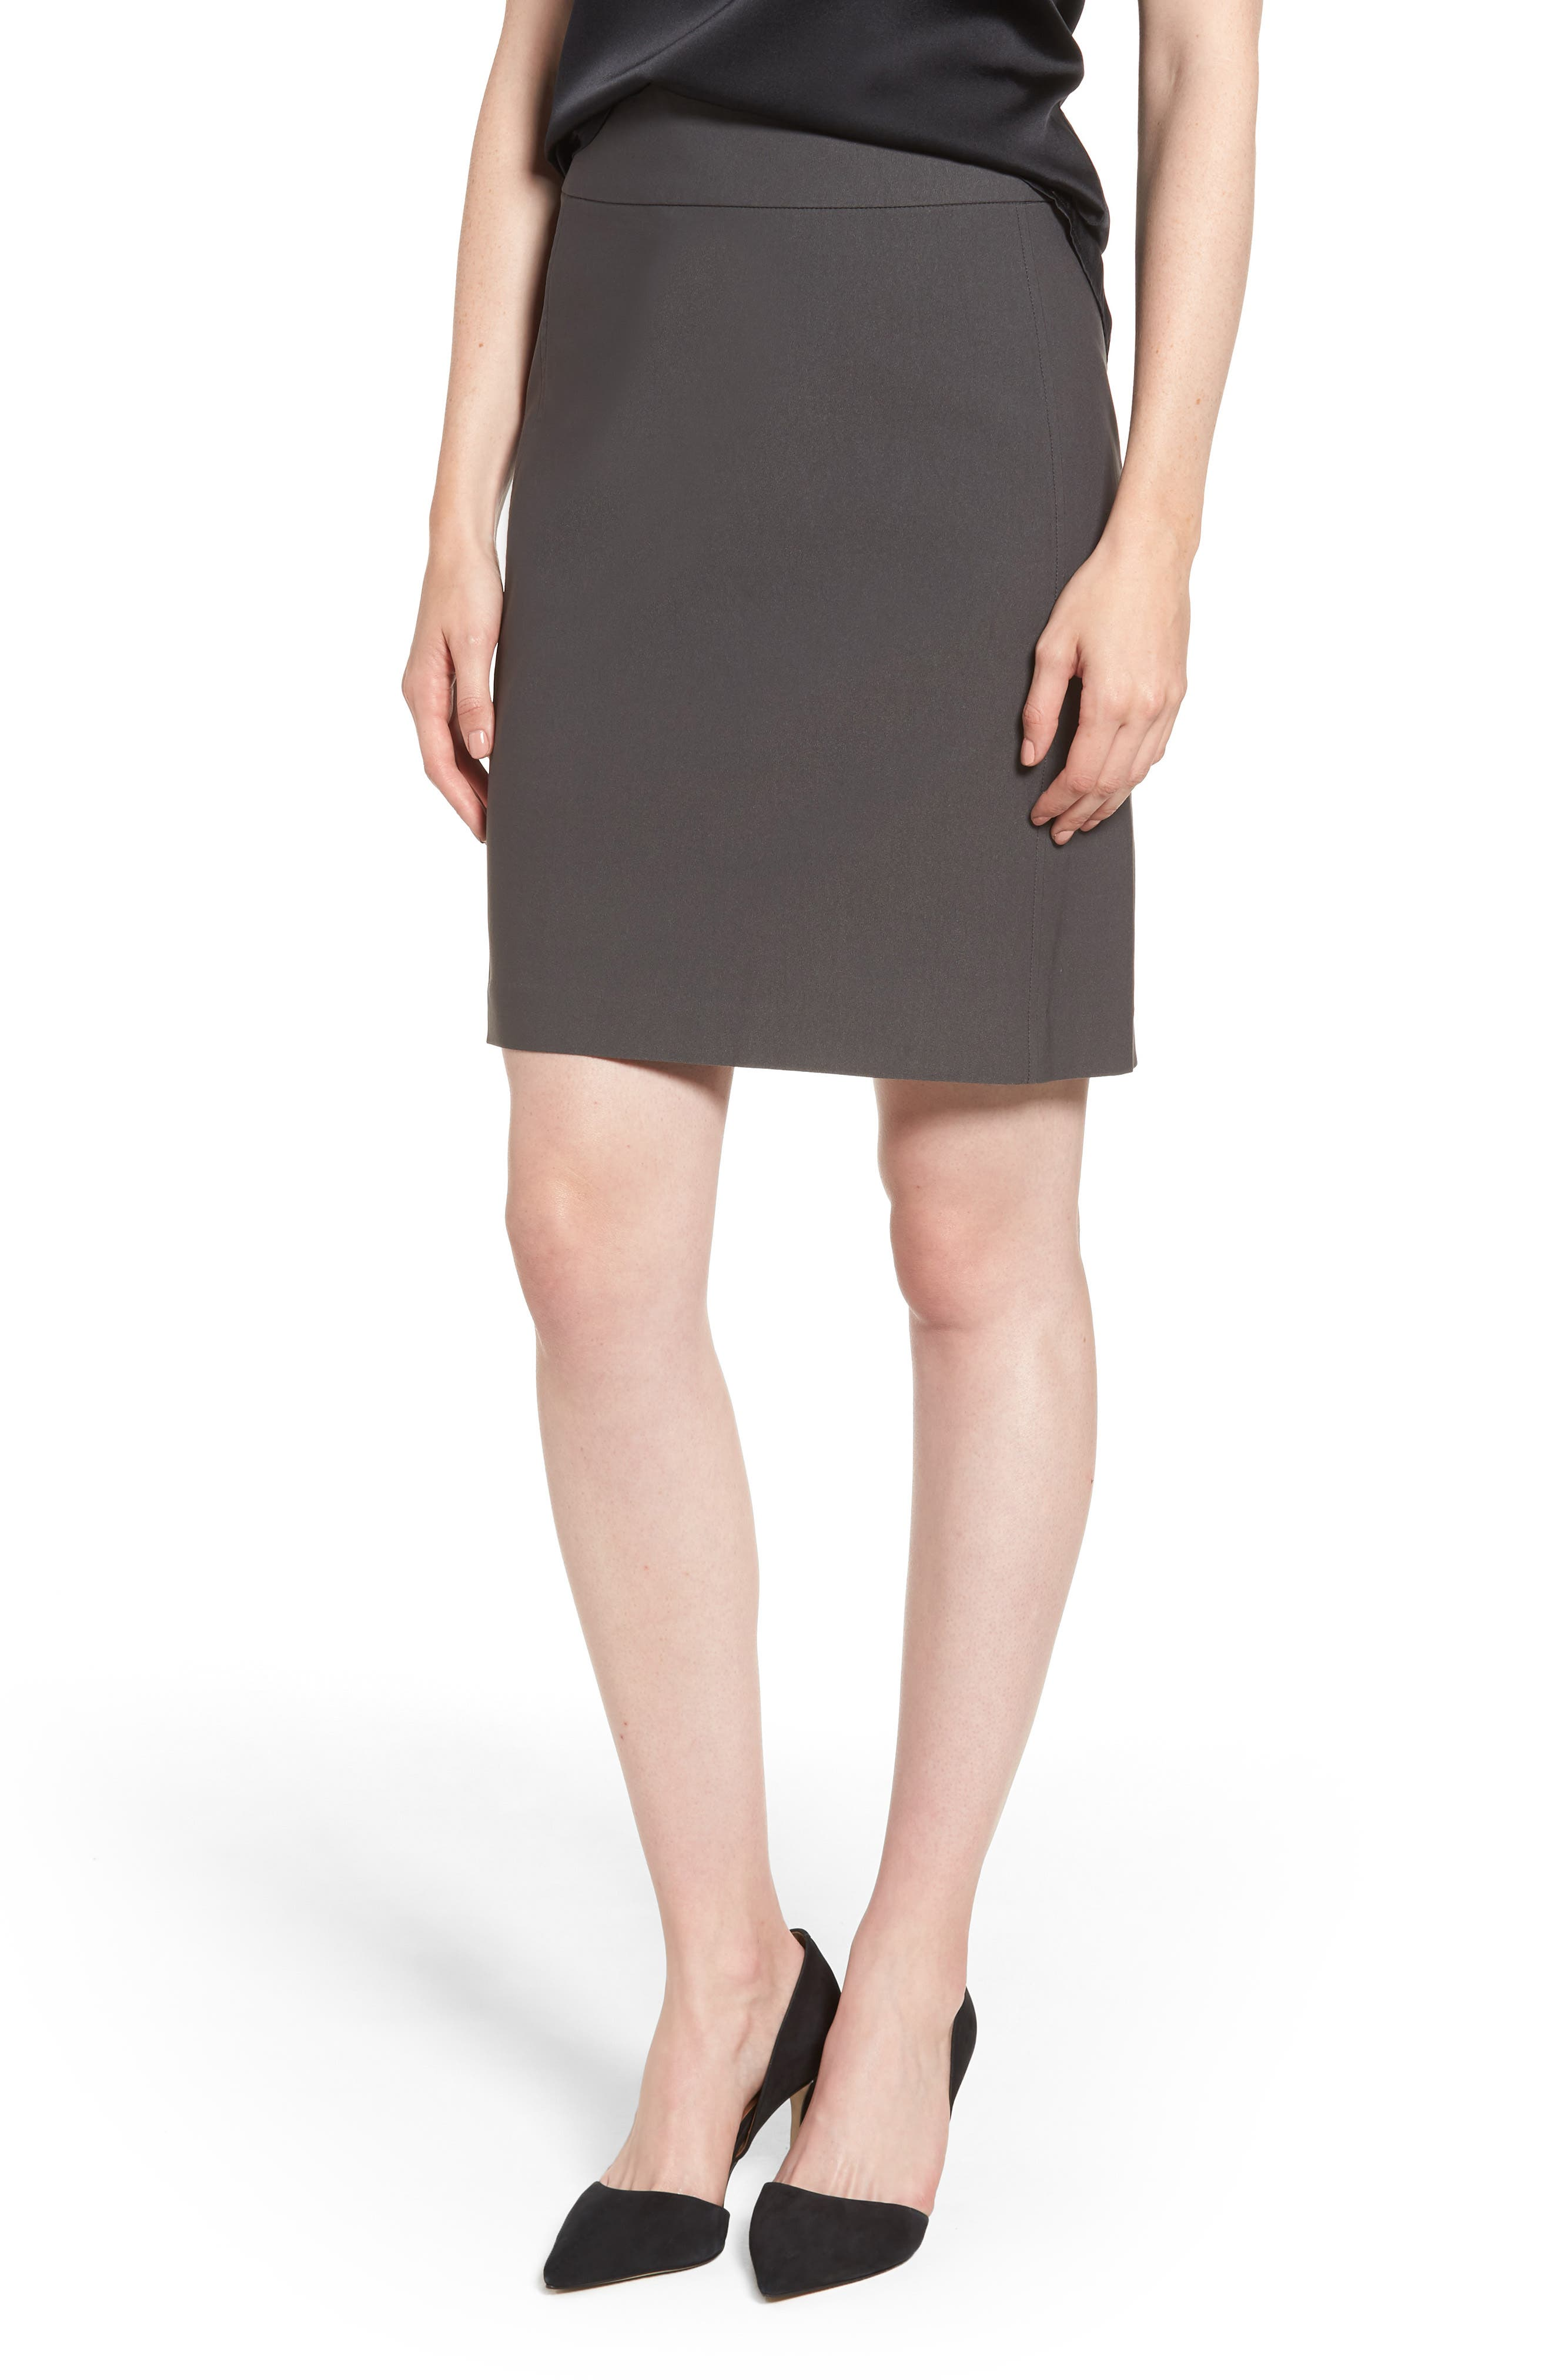 Wonderstretch Skirt,                             Main thumbnail 1, color,                             GRAPHITE